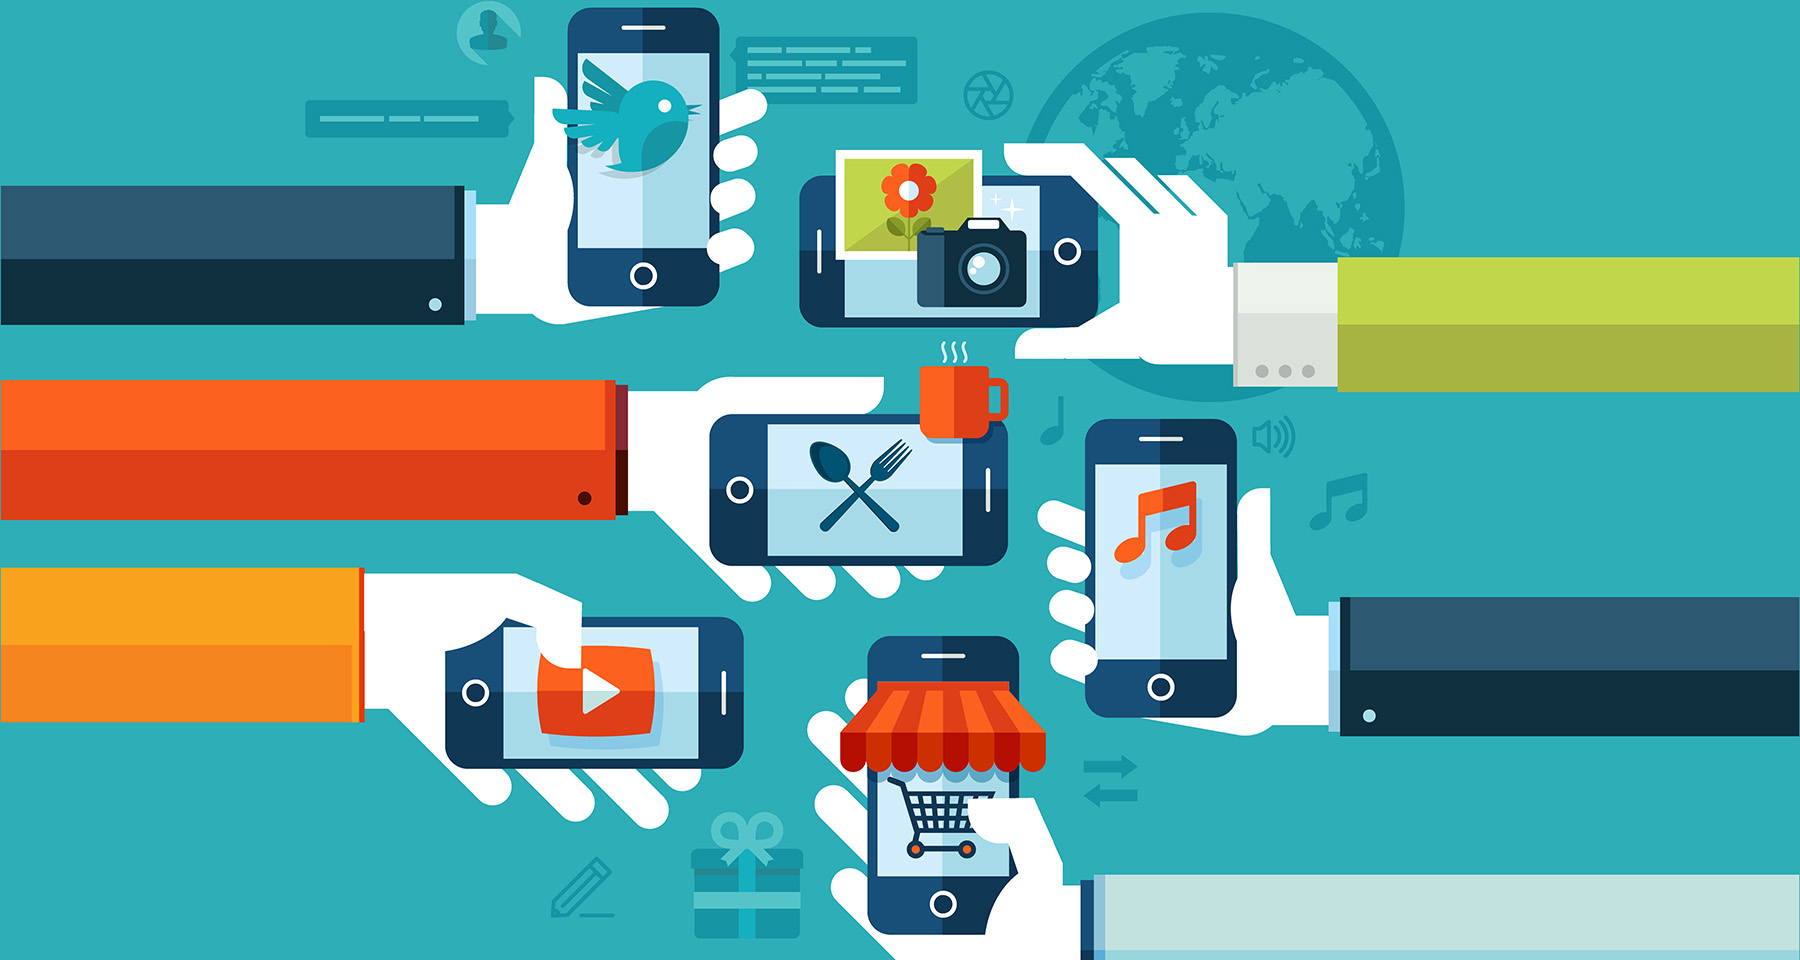 Mobile audiences want simple, slimmed down app products